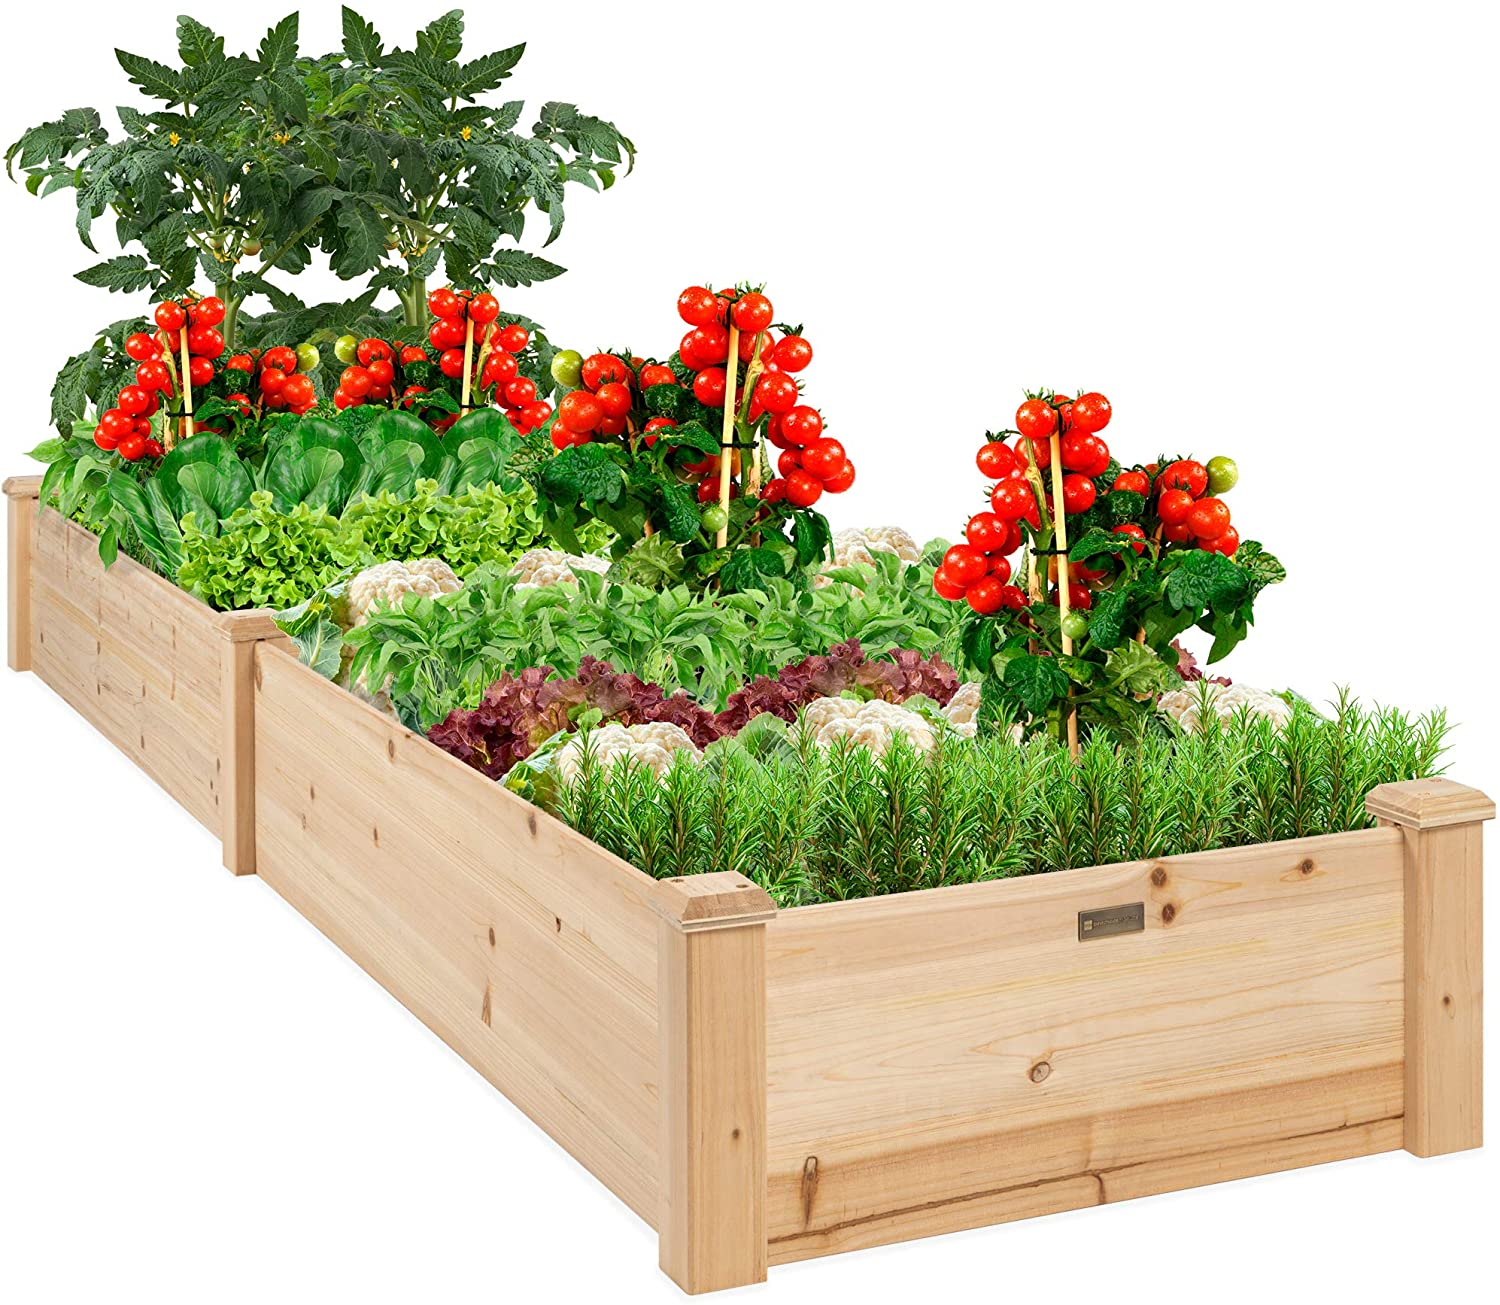 Best Choice Products Max 74% OFF 96x24x10in Outdoor Selling and selling Raised Bed Garden Wooden